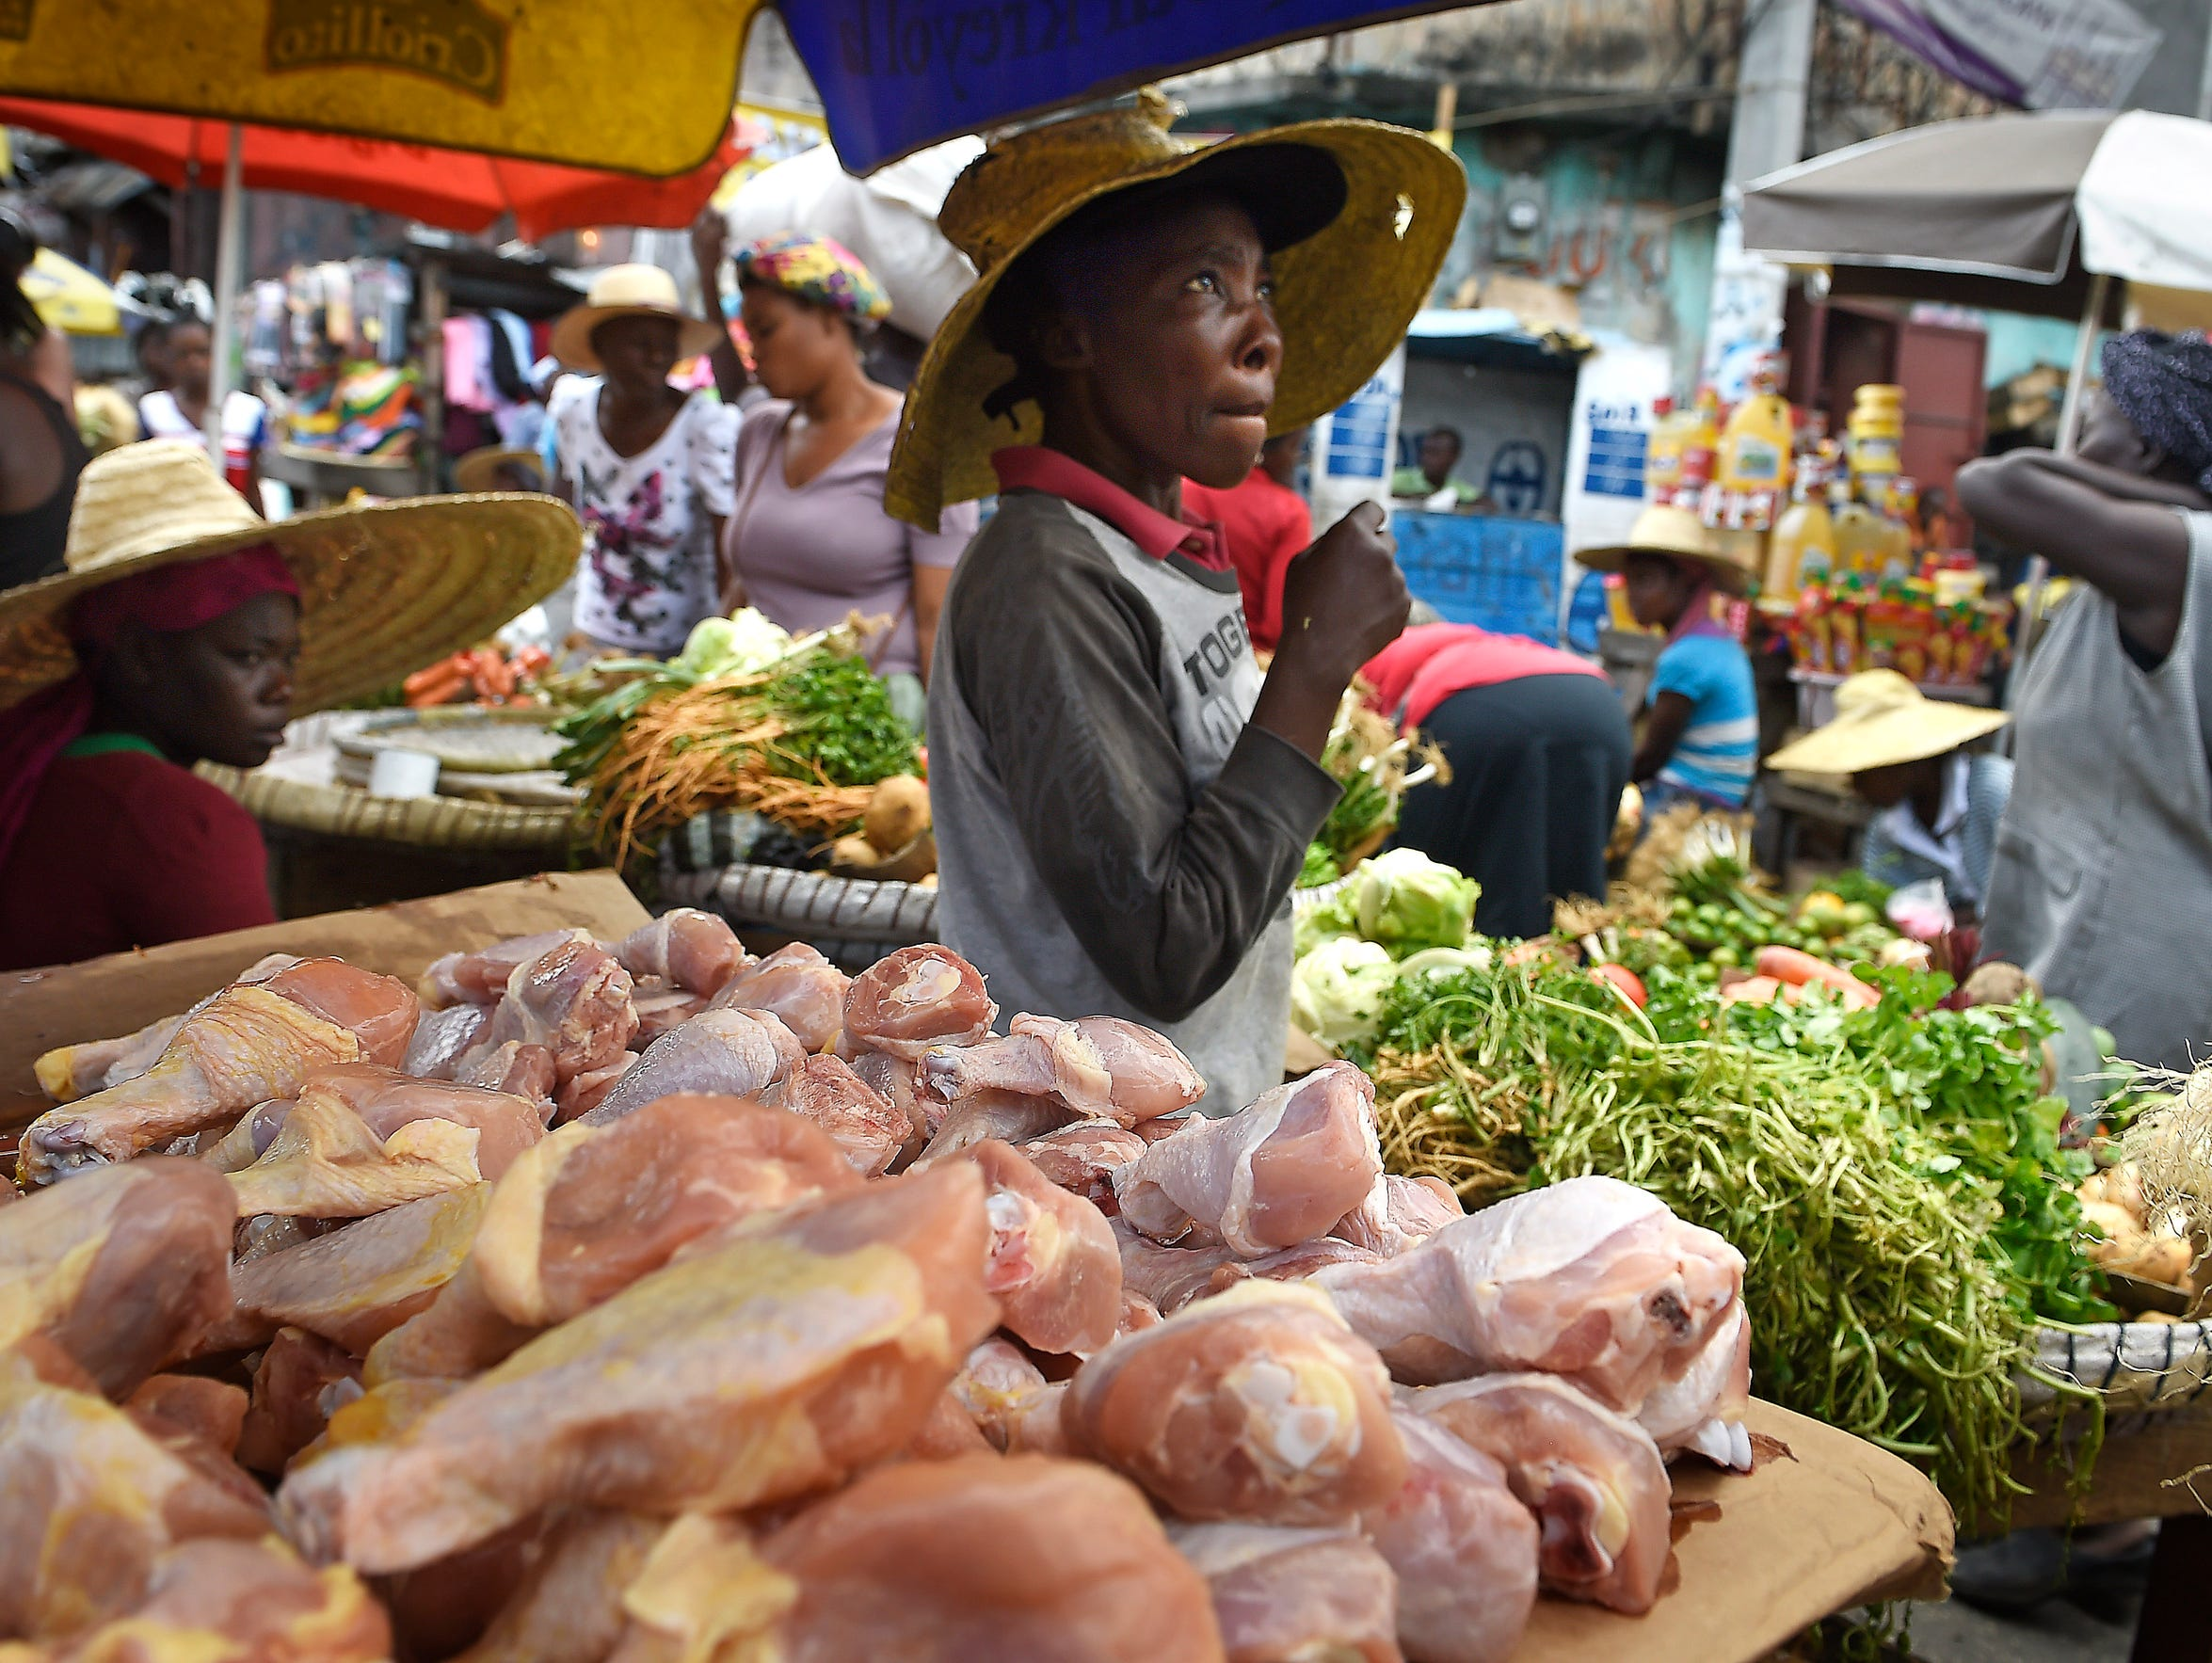 Imported chicken parts are sold in a Port-au-Prince